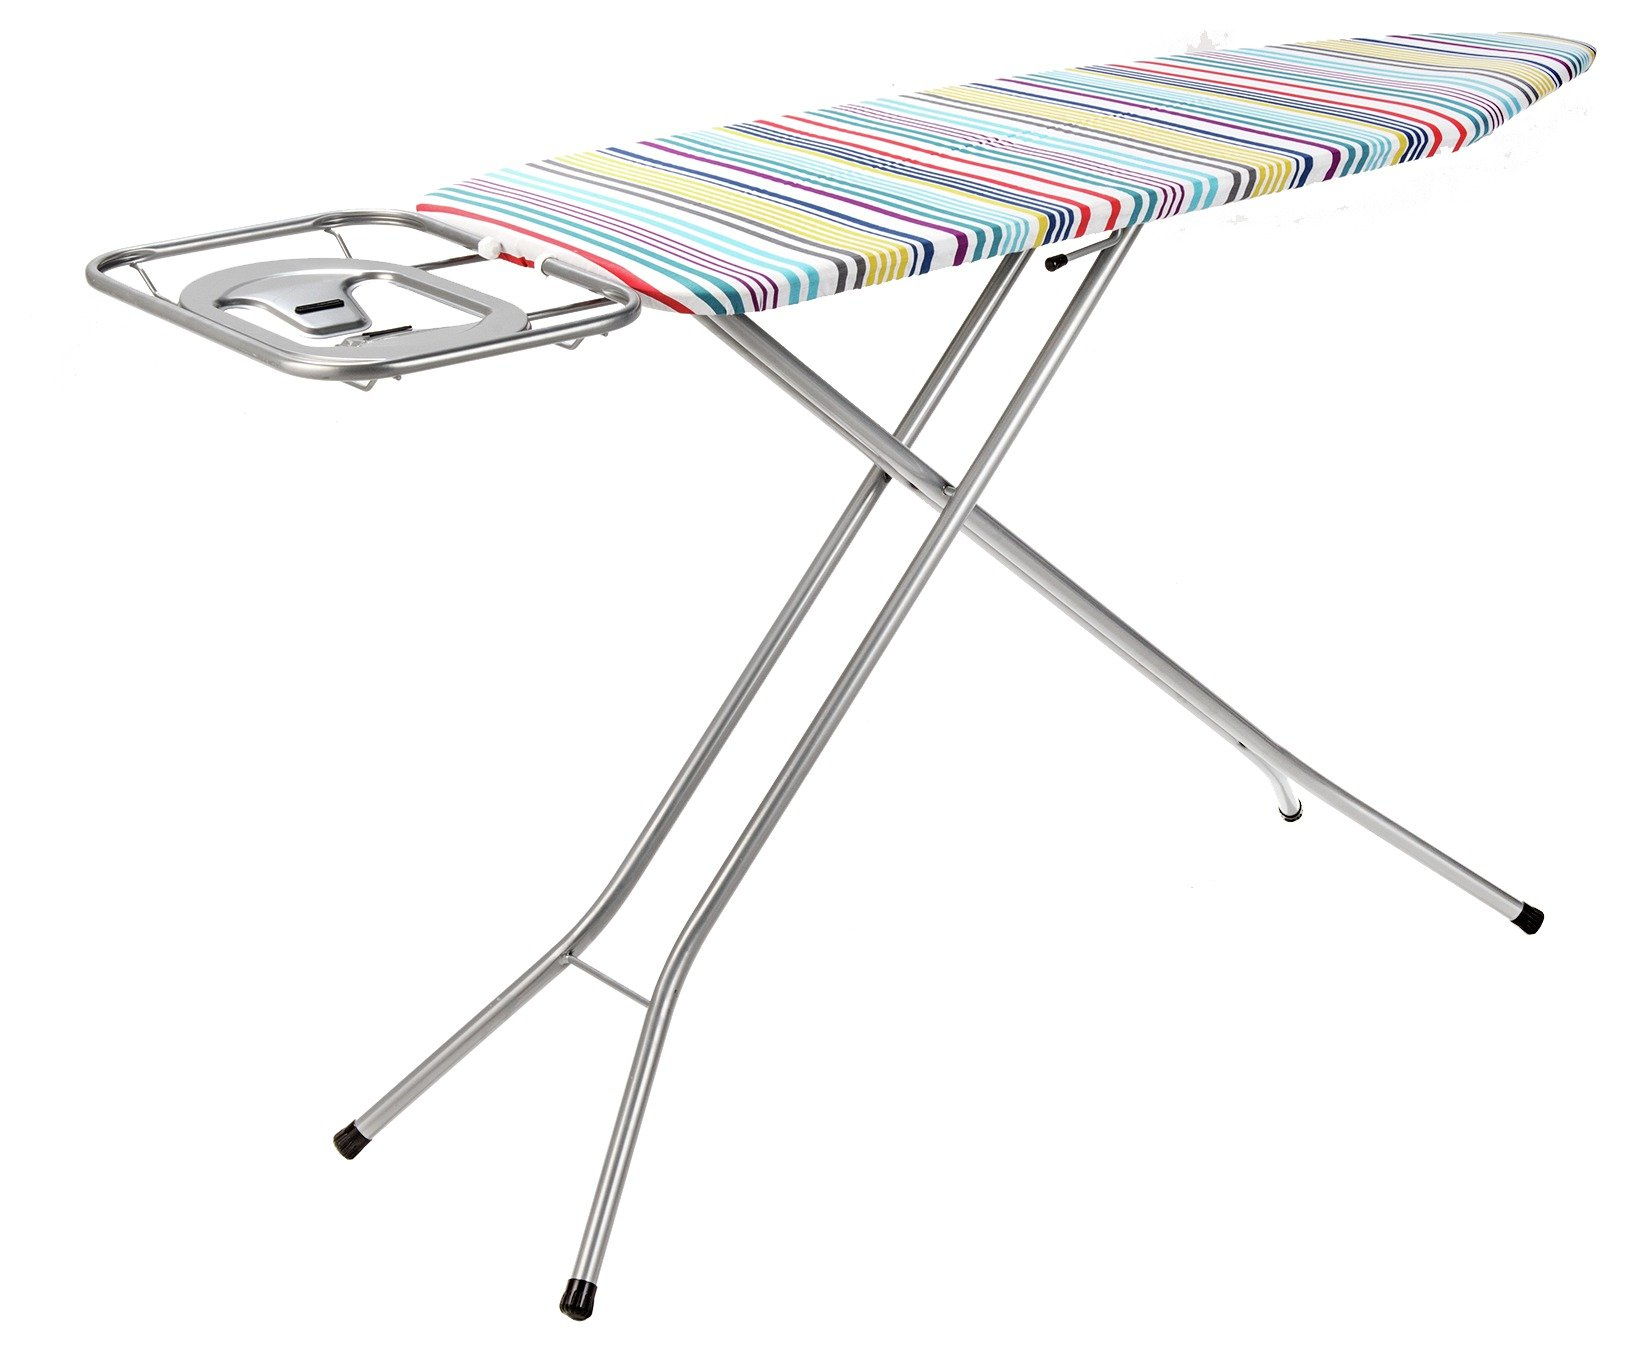 Image of ColourMatch 120 x 38cm Extra Wide Ironing Board - Striped